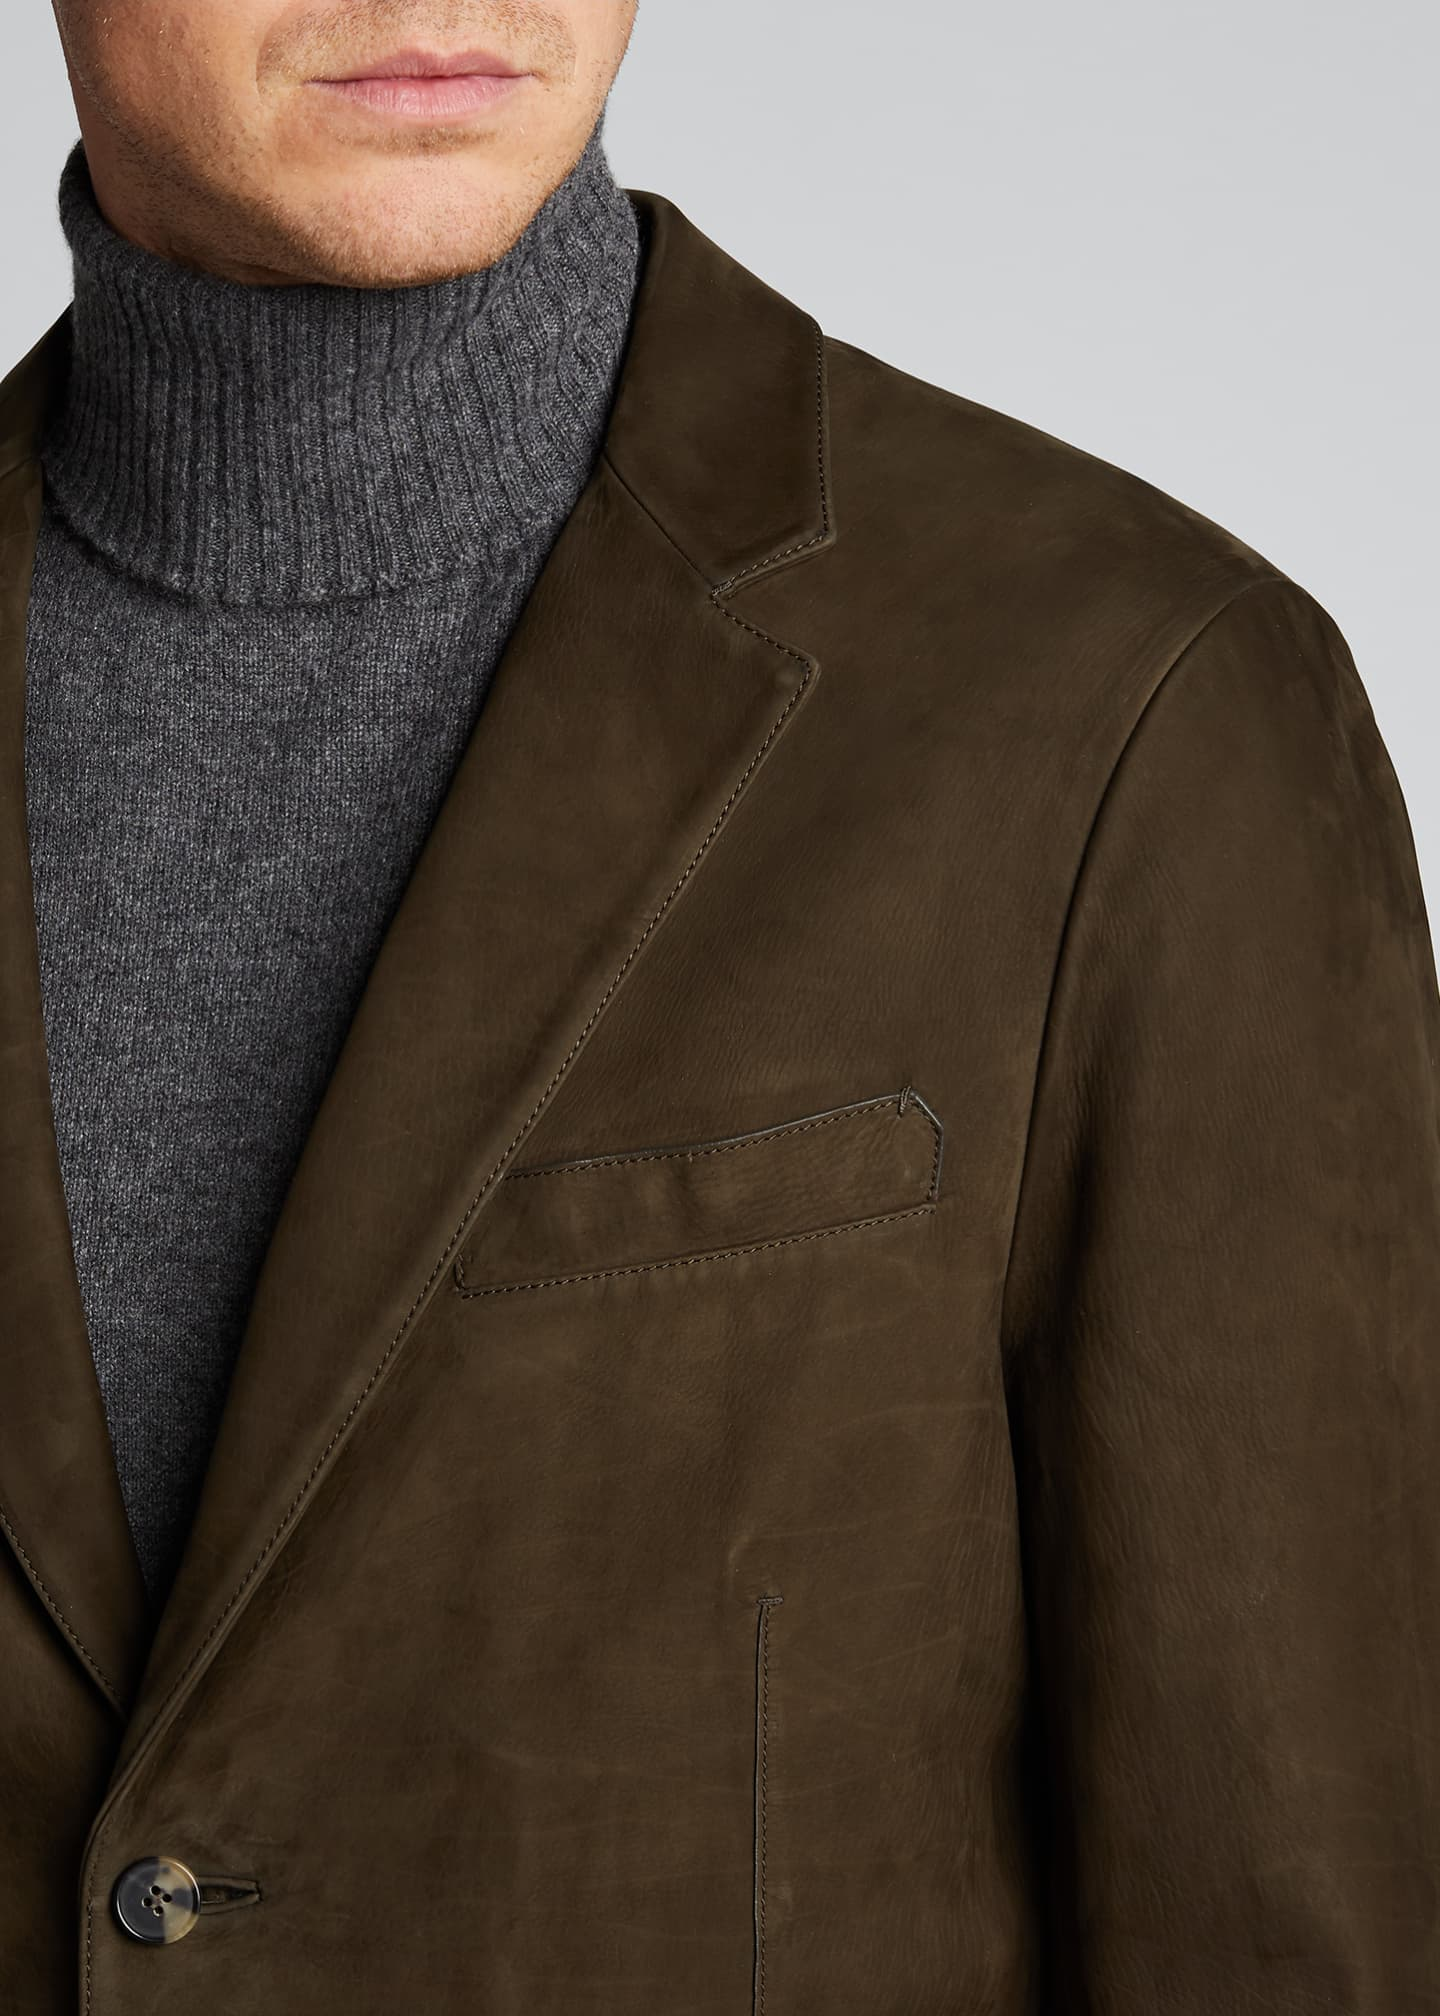 Image 4 of 5: Men's Two-Button Leather Jacket